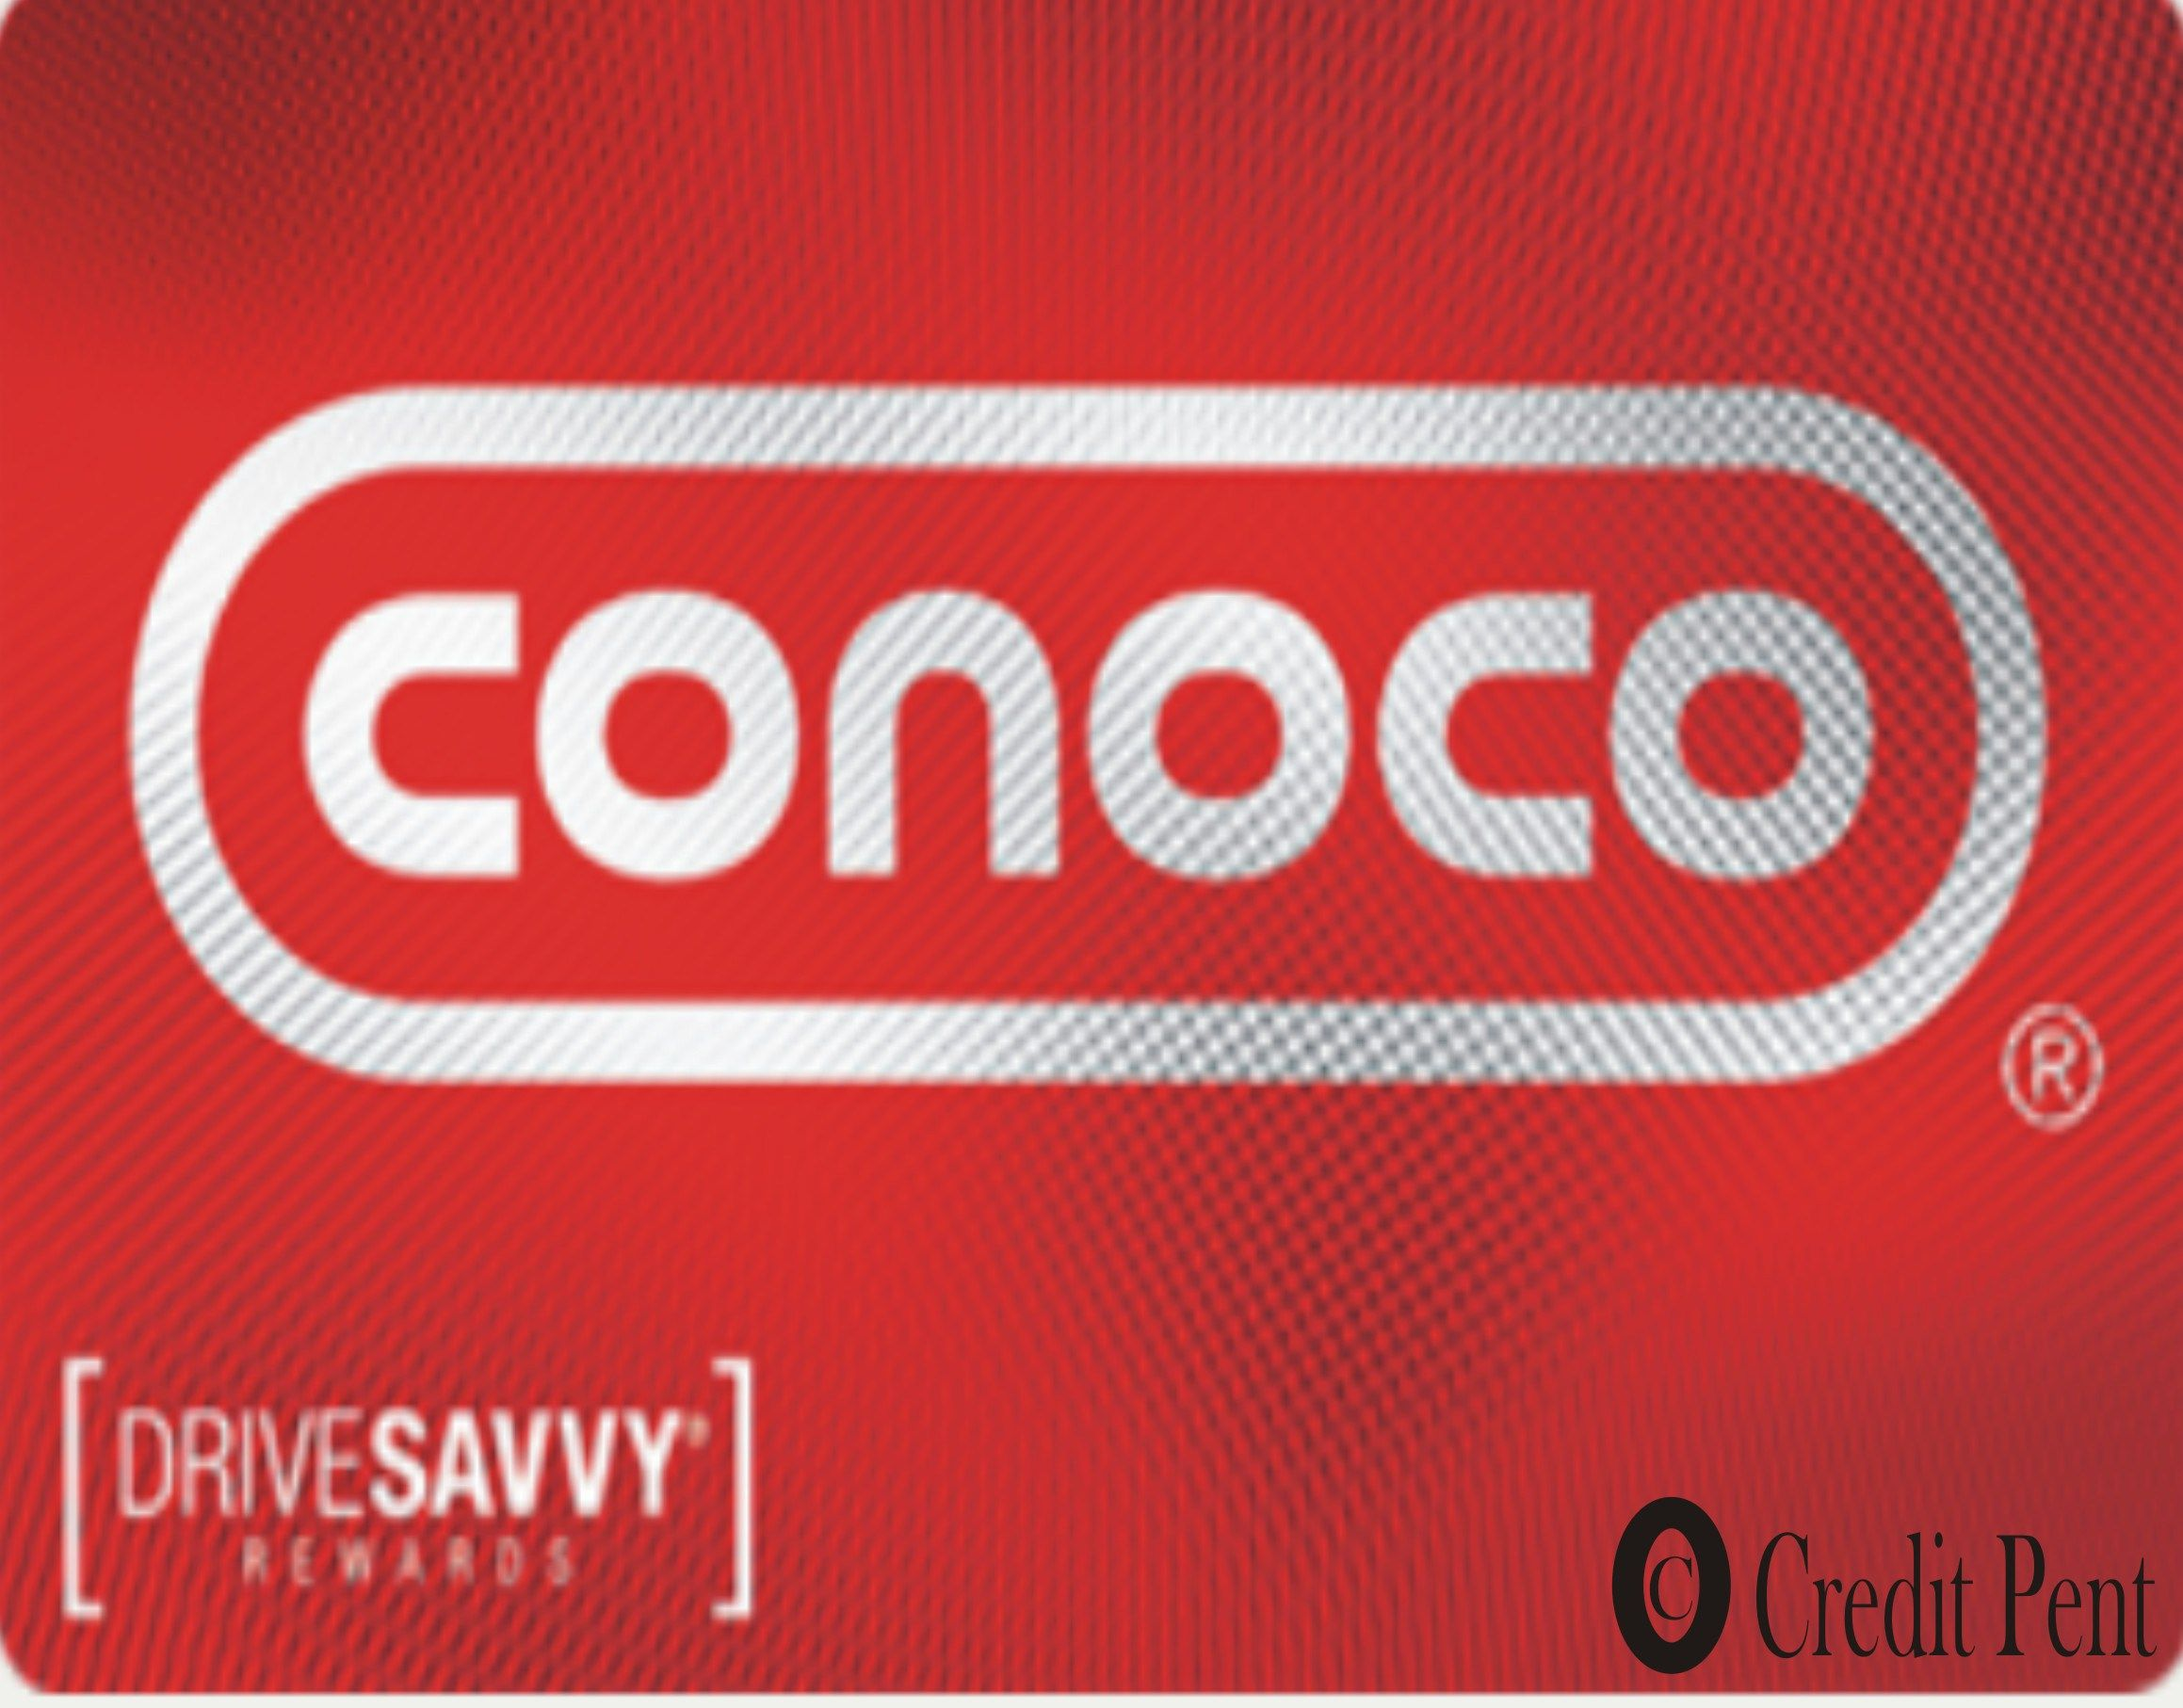 Conoco Credit Card Online Login Payment Benefits Account Rewards Credit Card Online Online Login Credit Card